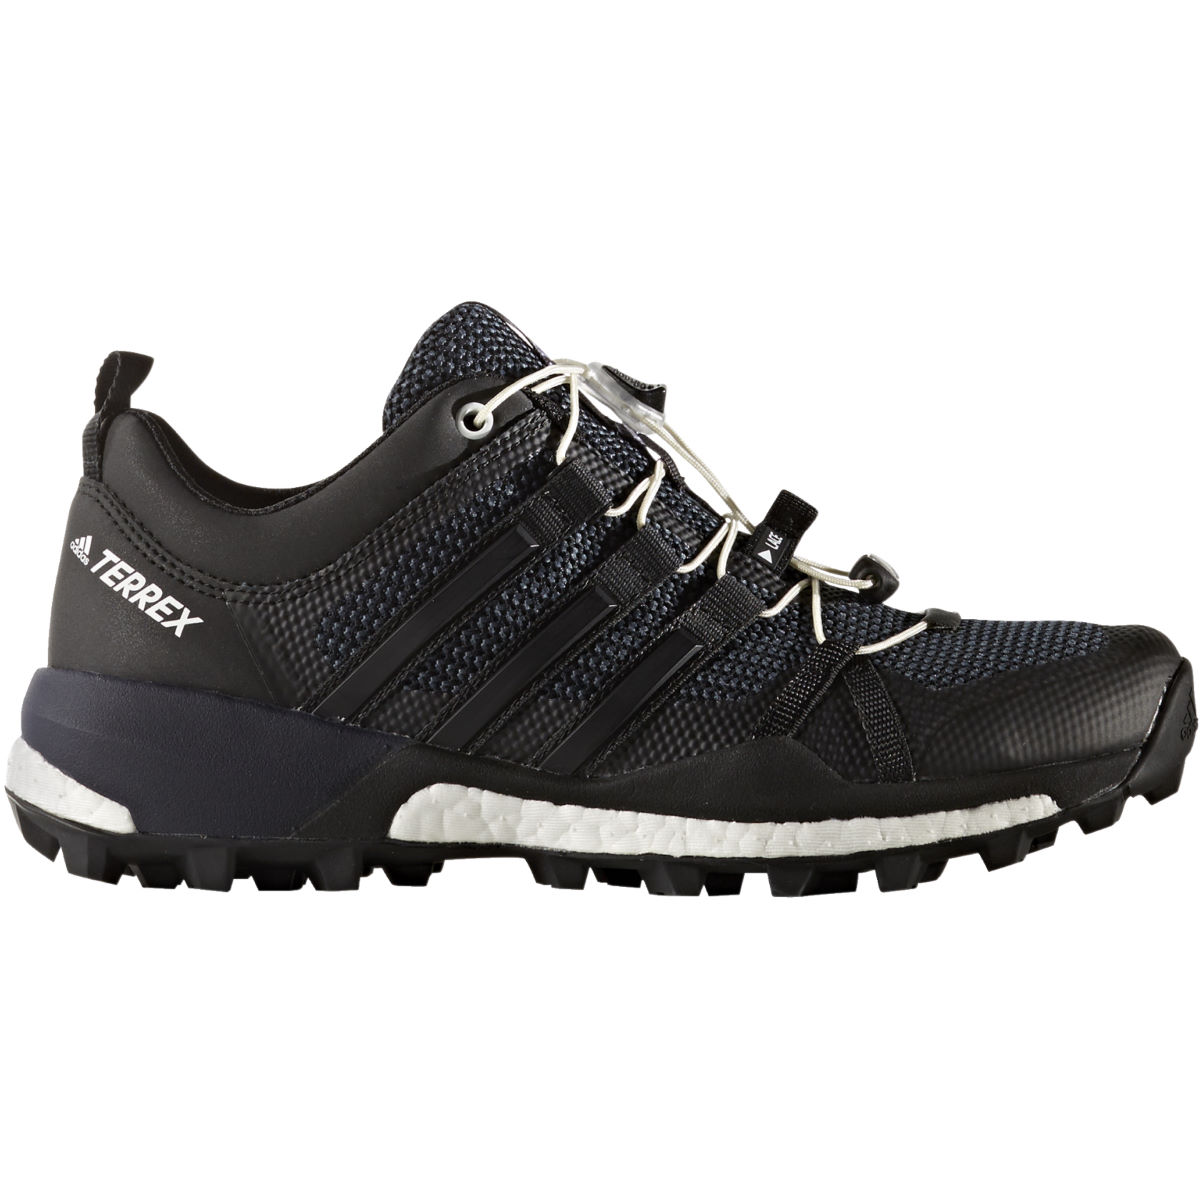 Chaussures Femme adidas Terrex Skychaser - 4 Dark Grey/Core Black